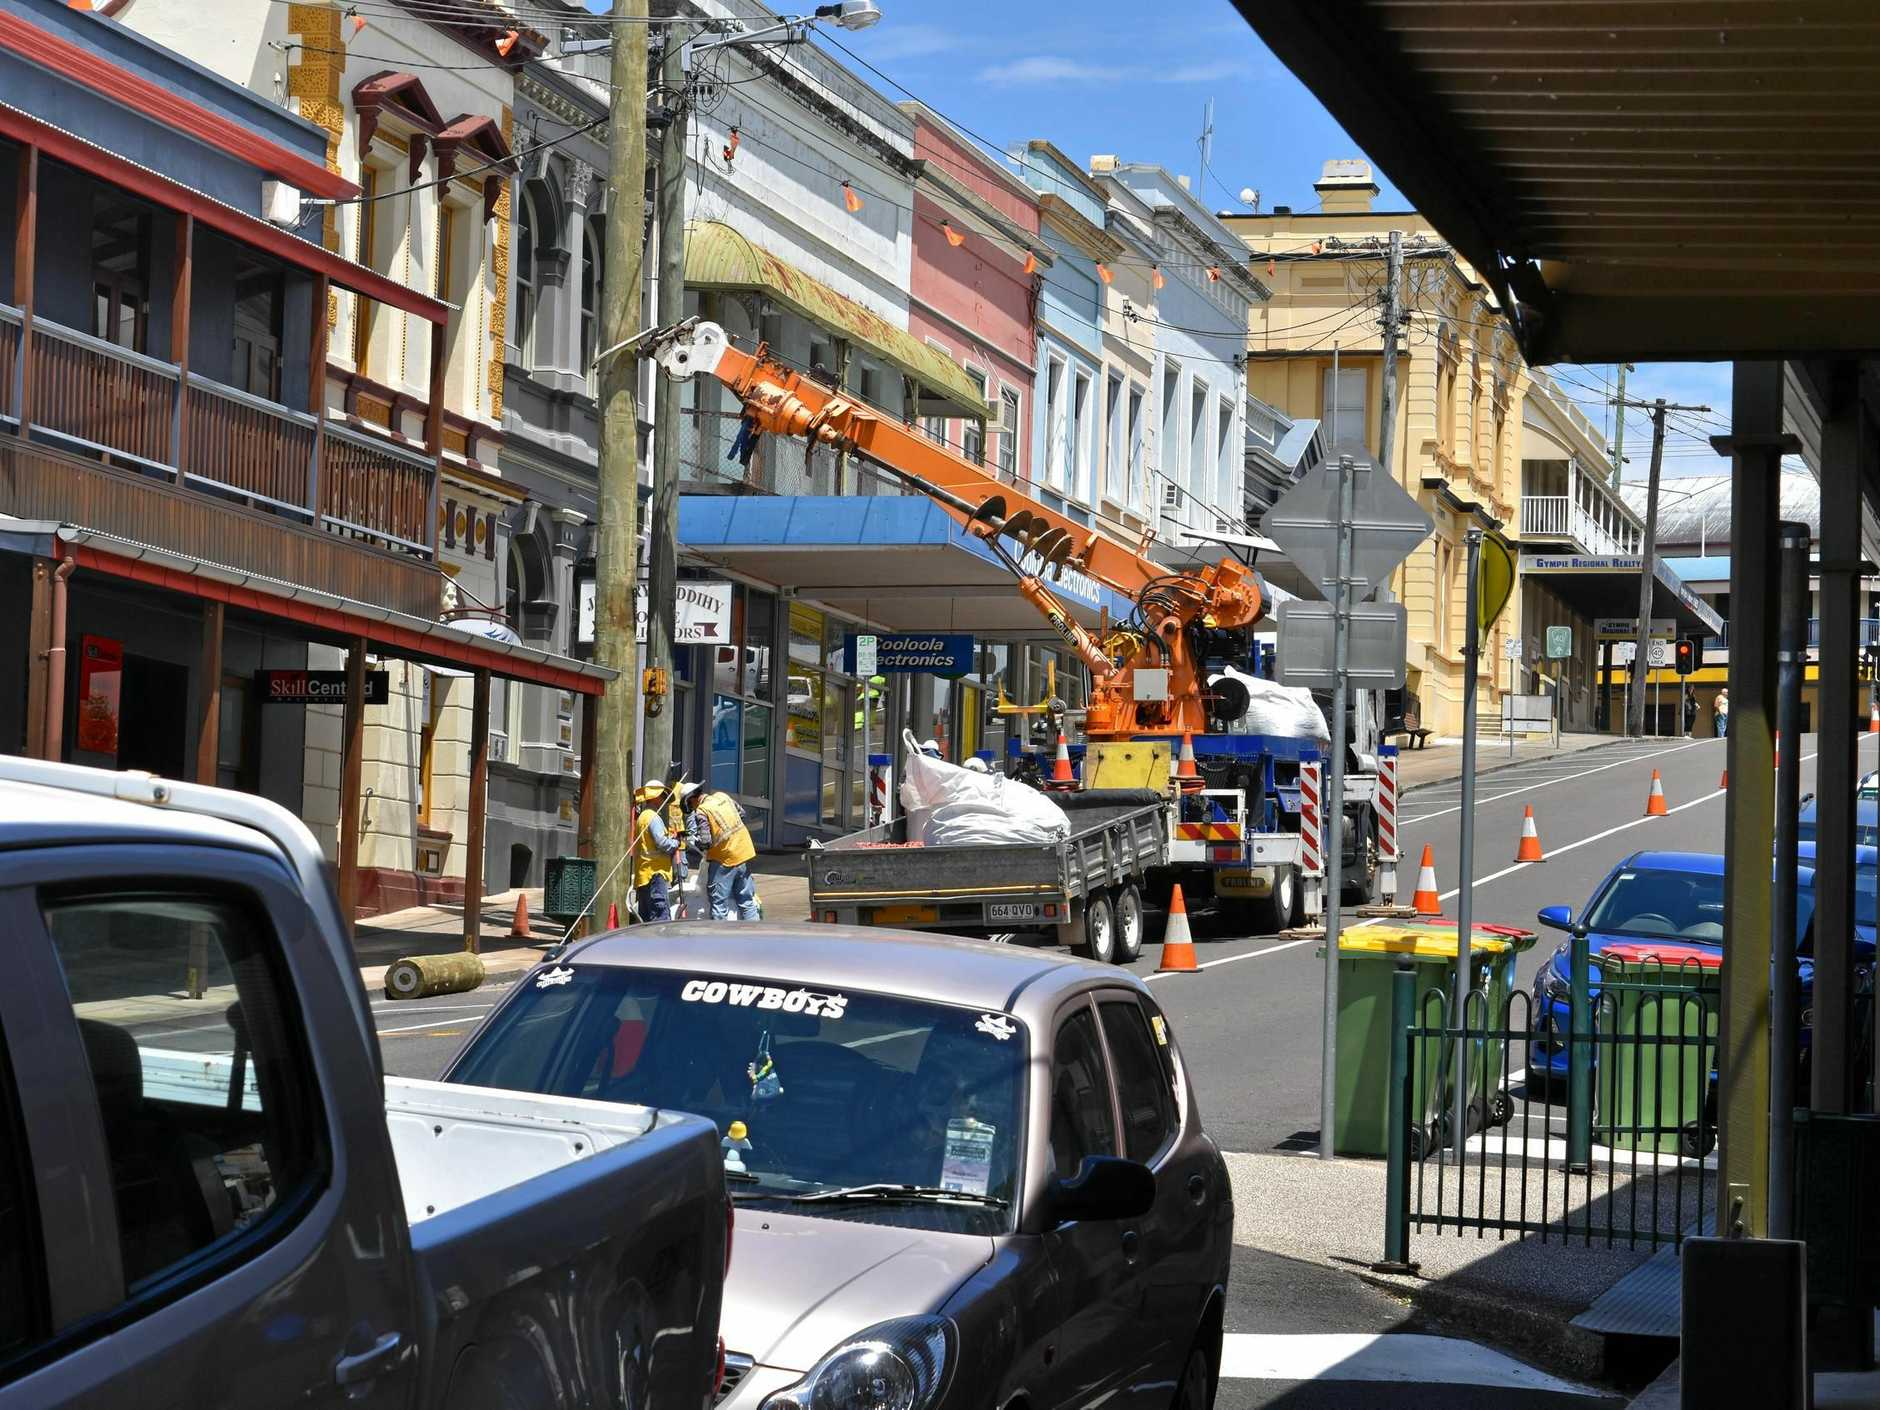 Energex replaces power lines and poles on Upper Mary St Gympie